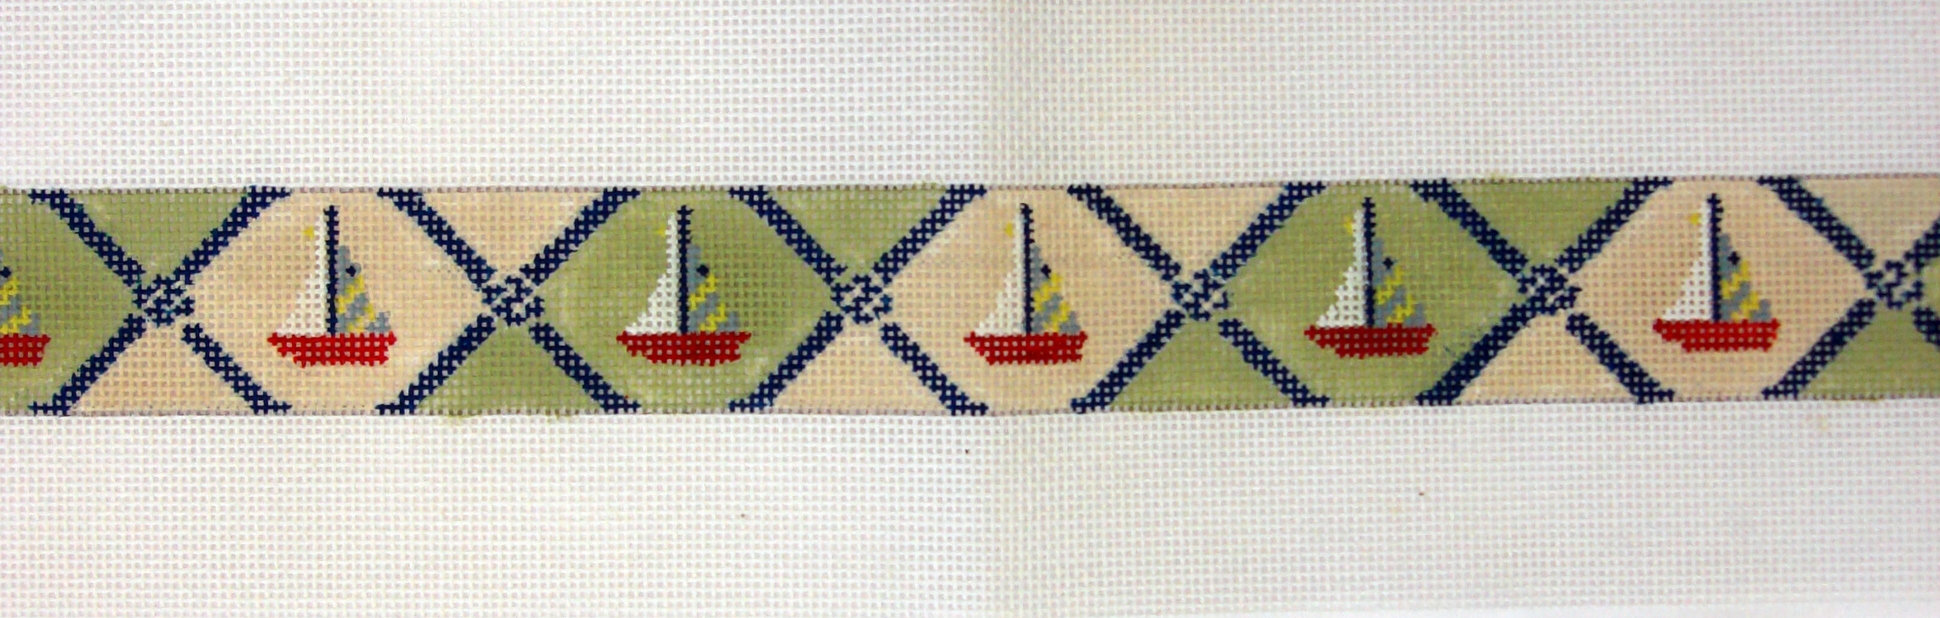 Boats & Ropes      (Handpainted by Walker Street Designs) 18*B-258